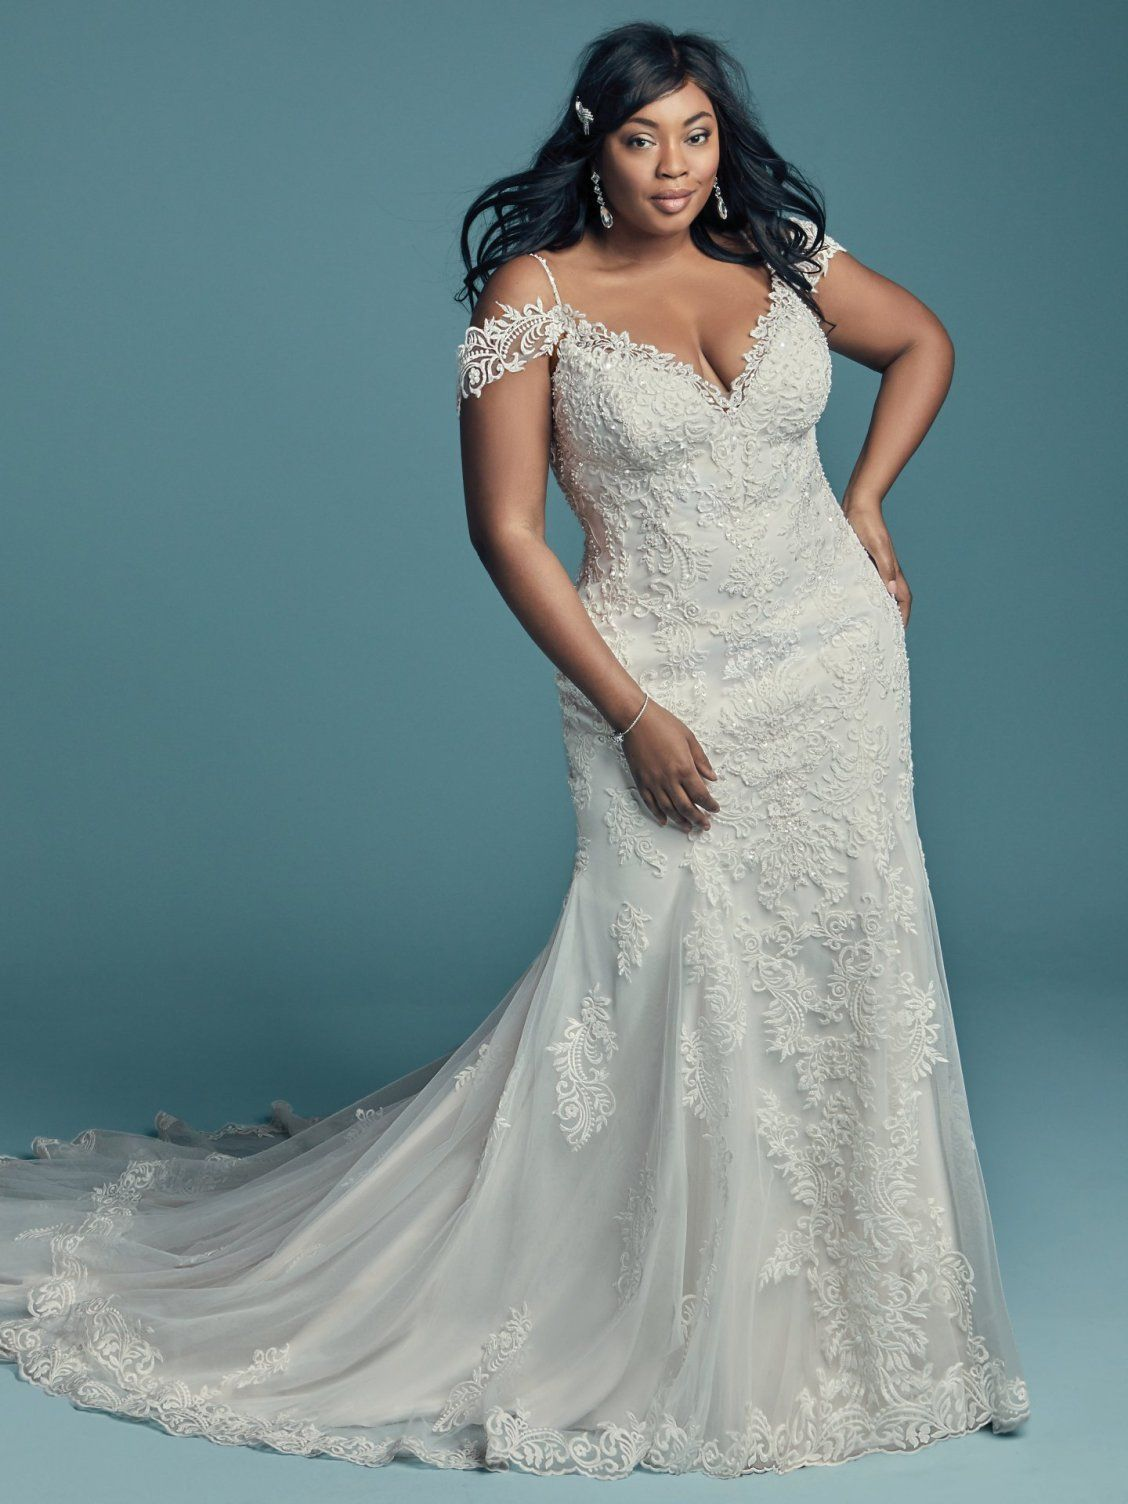 03e3e58afe98 Maggie Sottero - DELLA LYNETTE, This fit-and-flare offers additional  coverage to